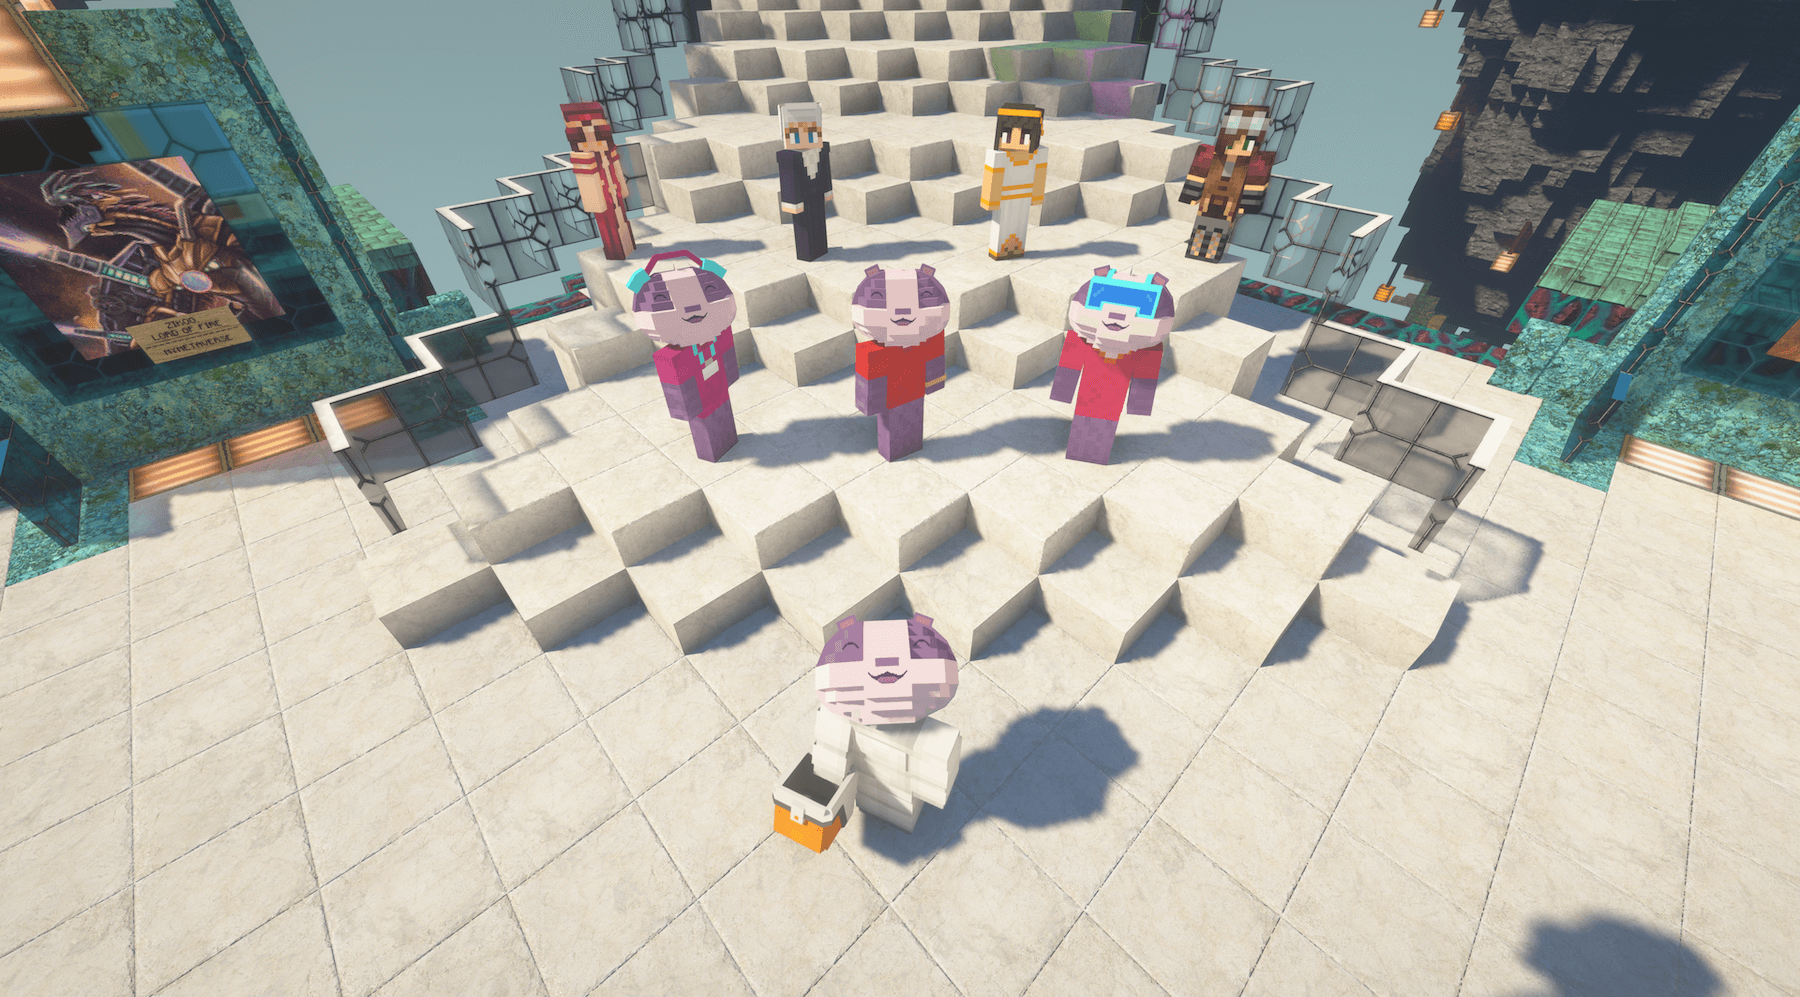 Microsoft launches game to celebrate women in science with Minecraft NFT rewards